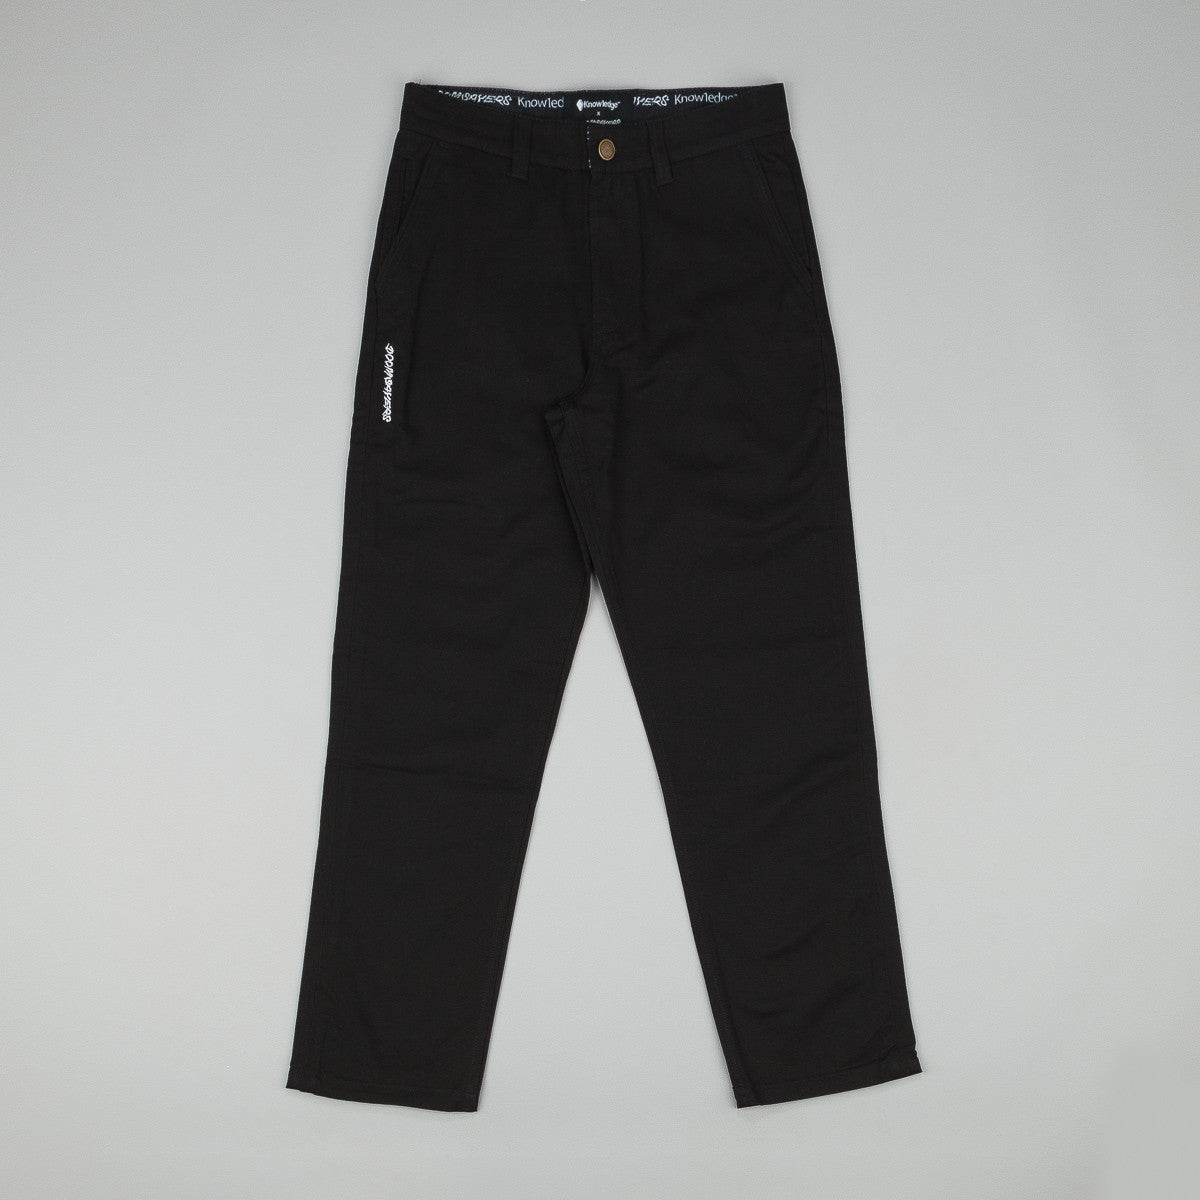 Doom Sayers X Know1edge Stranger Trousers